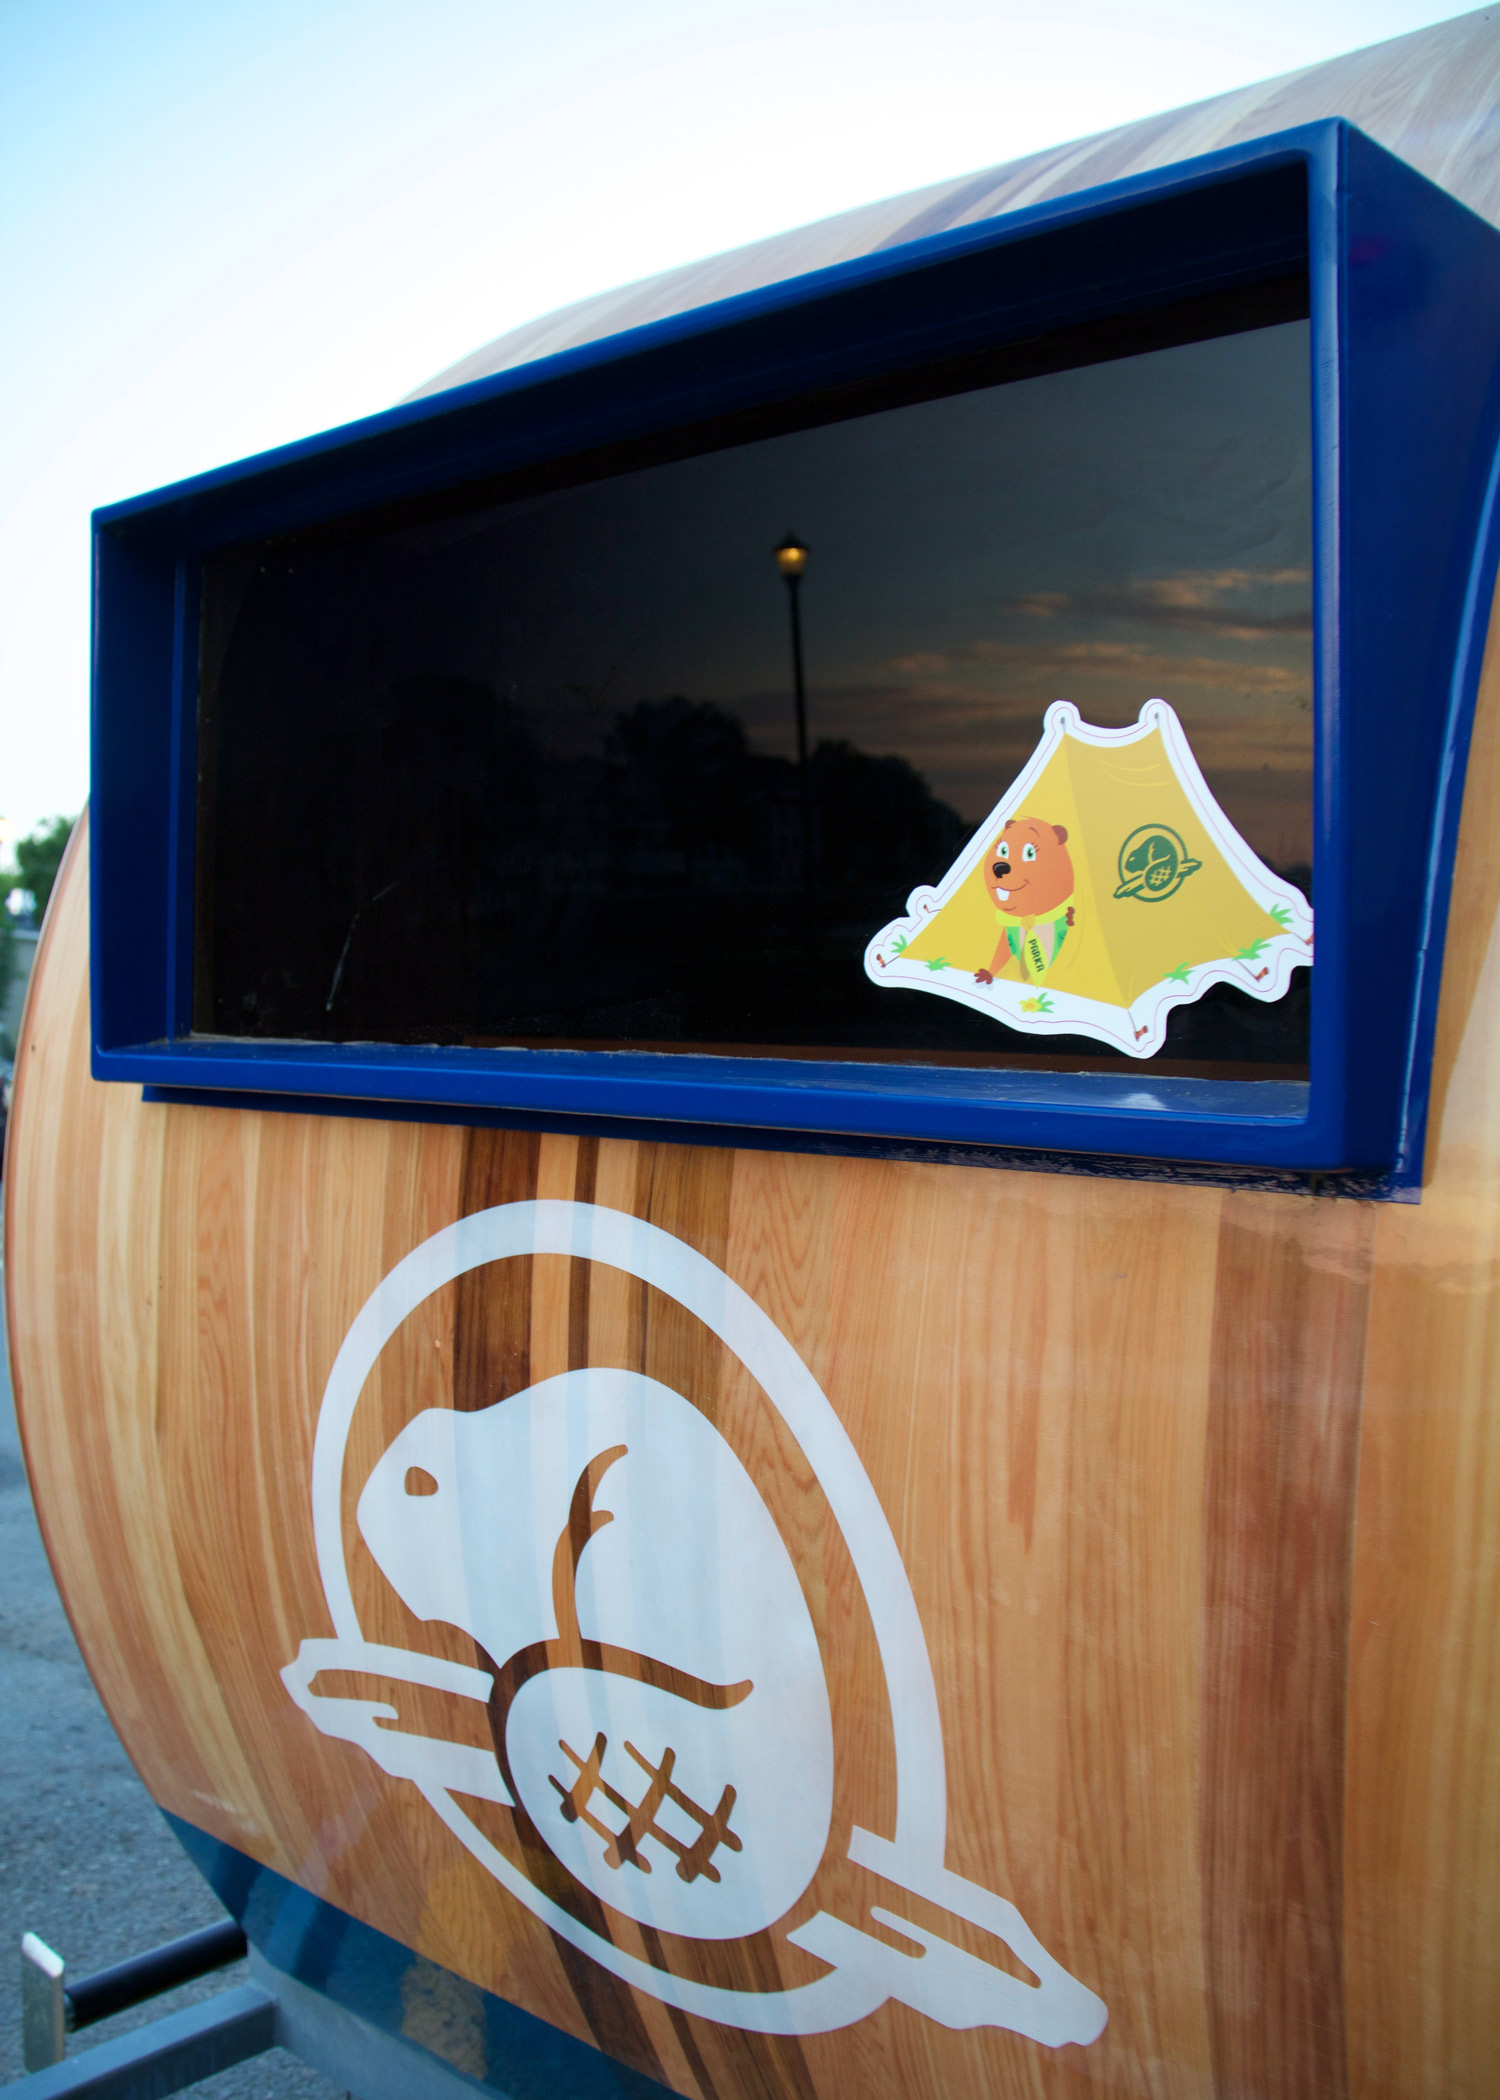 PARKA Parka, Parks Canada mascot, will appear discretely in various place on the Kiosk.